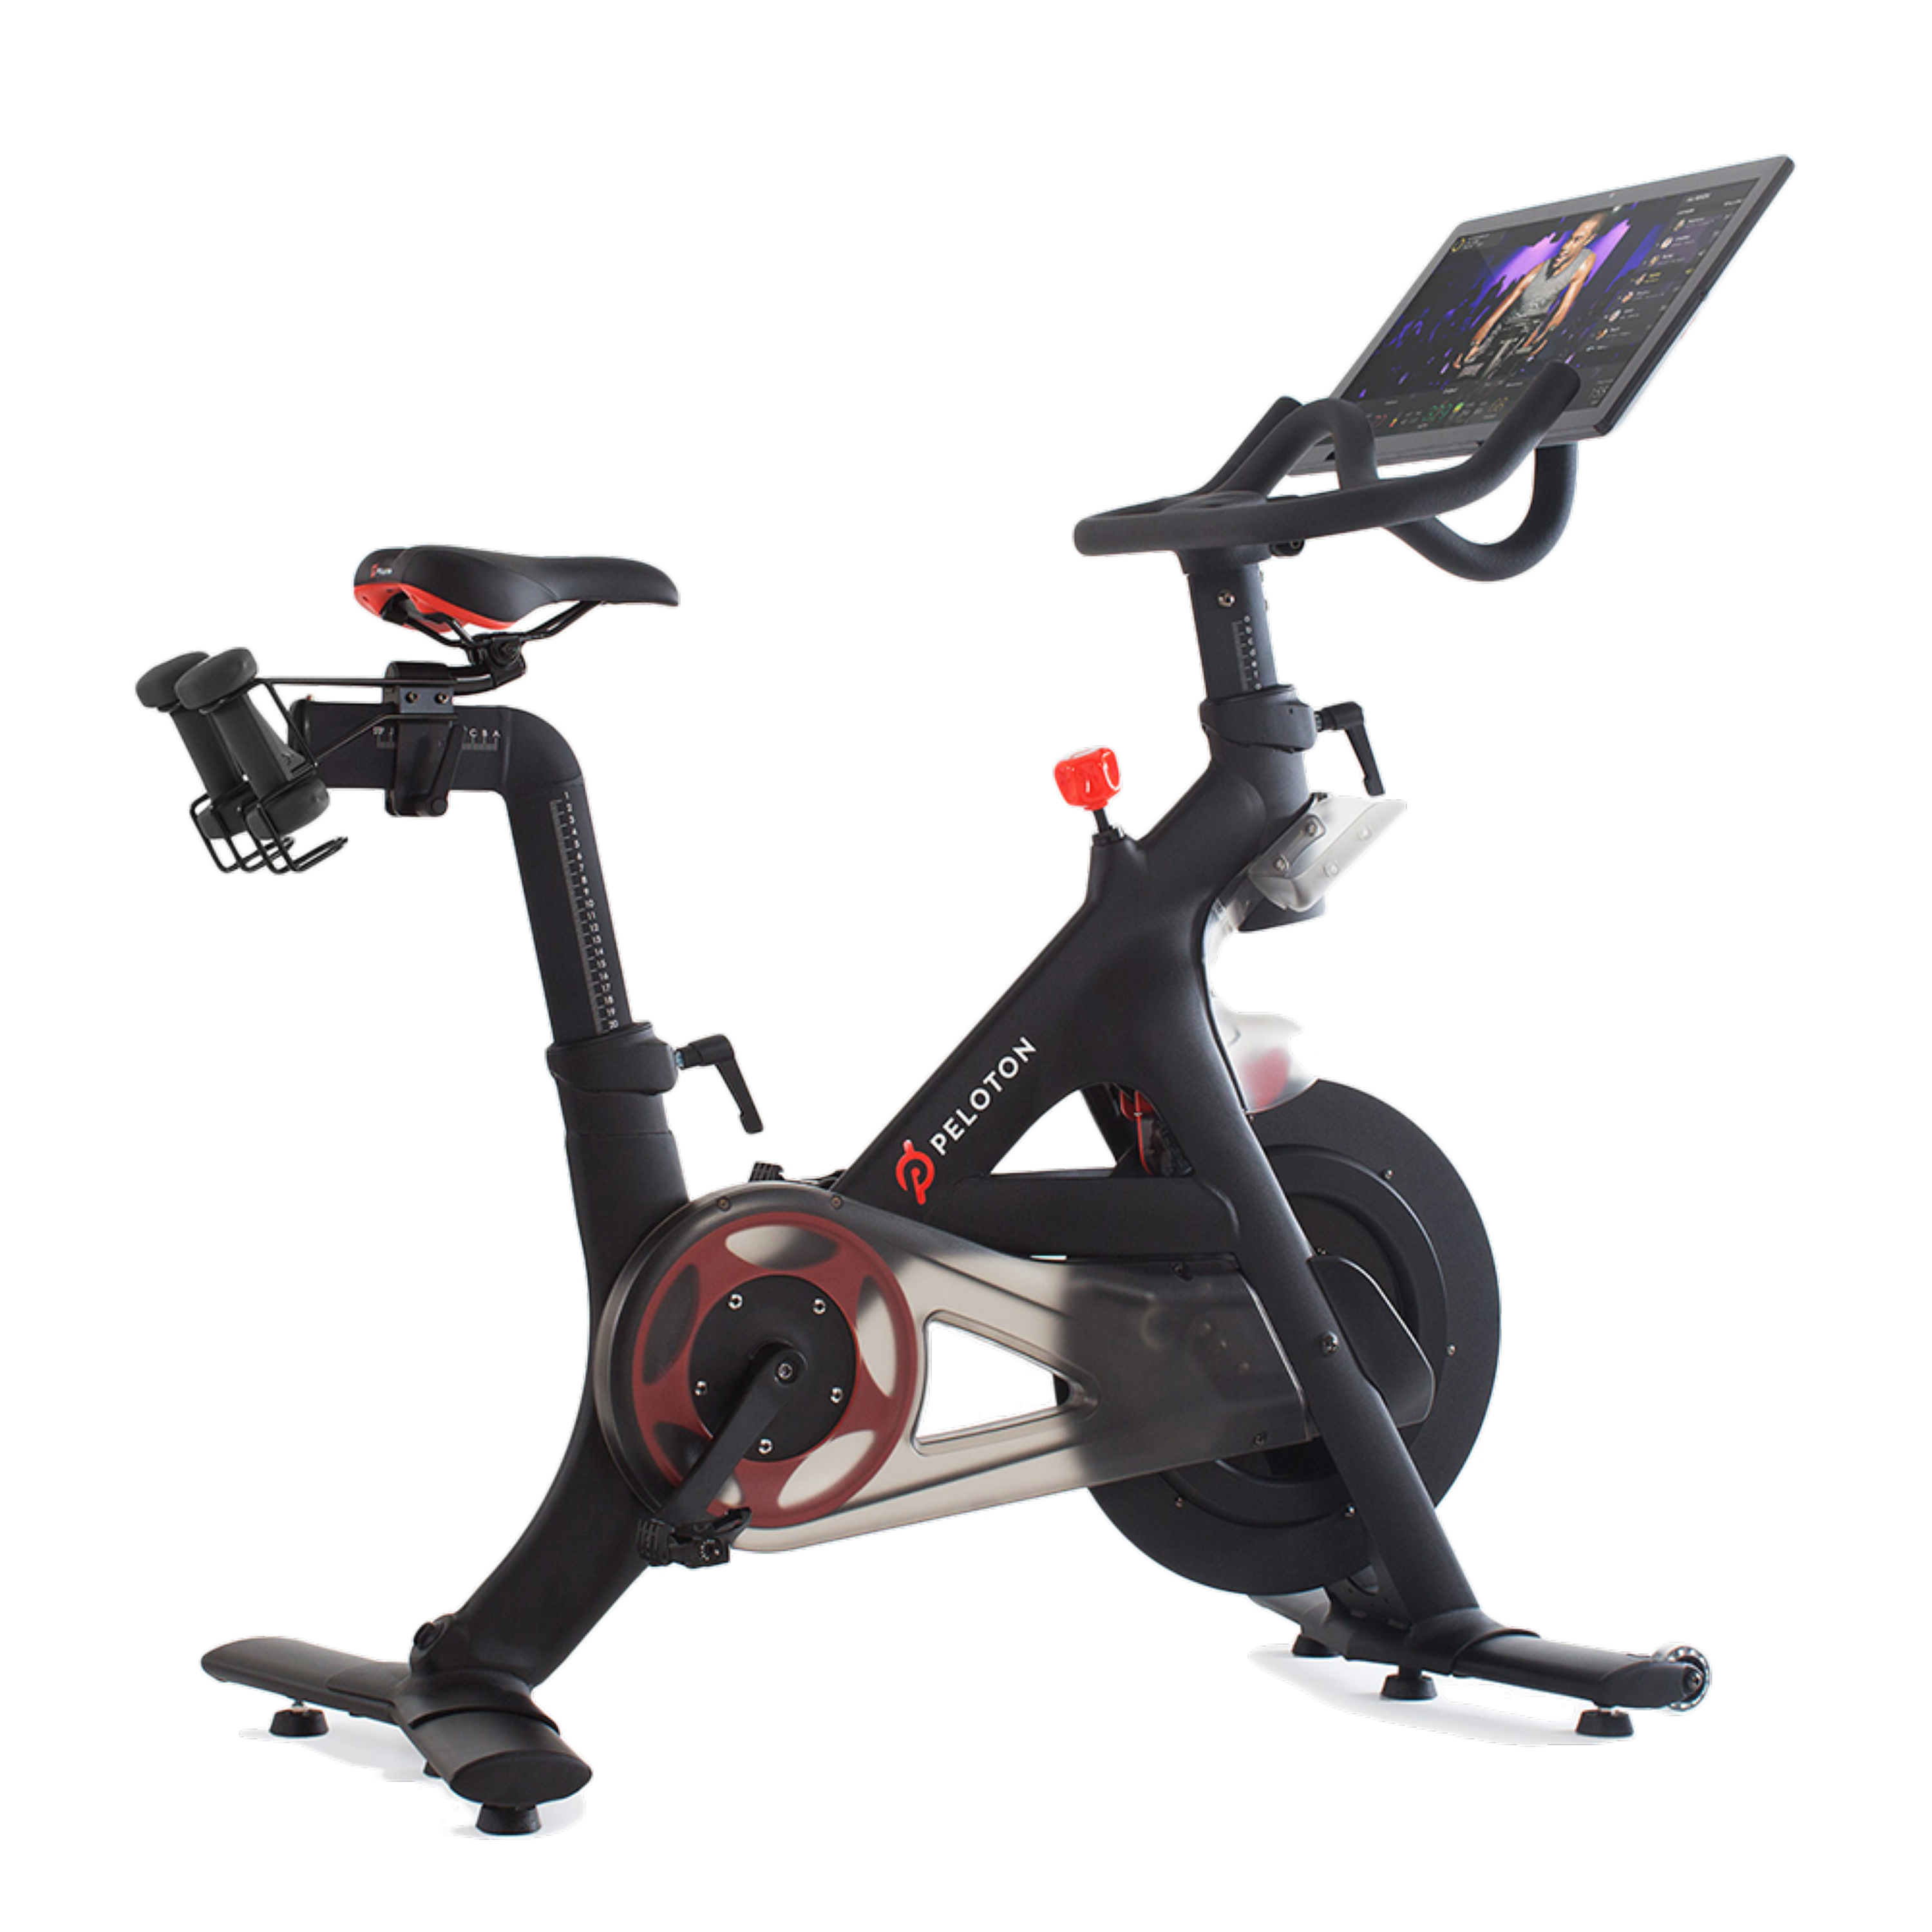 The Absolute Beginner S Guide To Peloton Peloton Bike Spin Bike